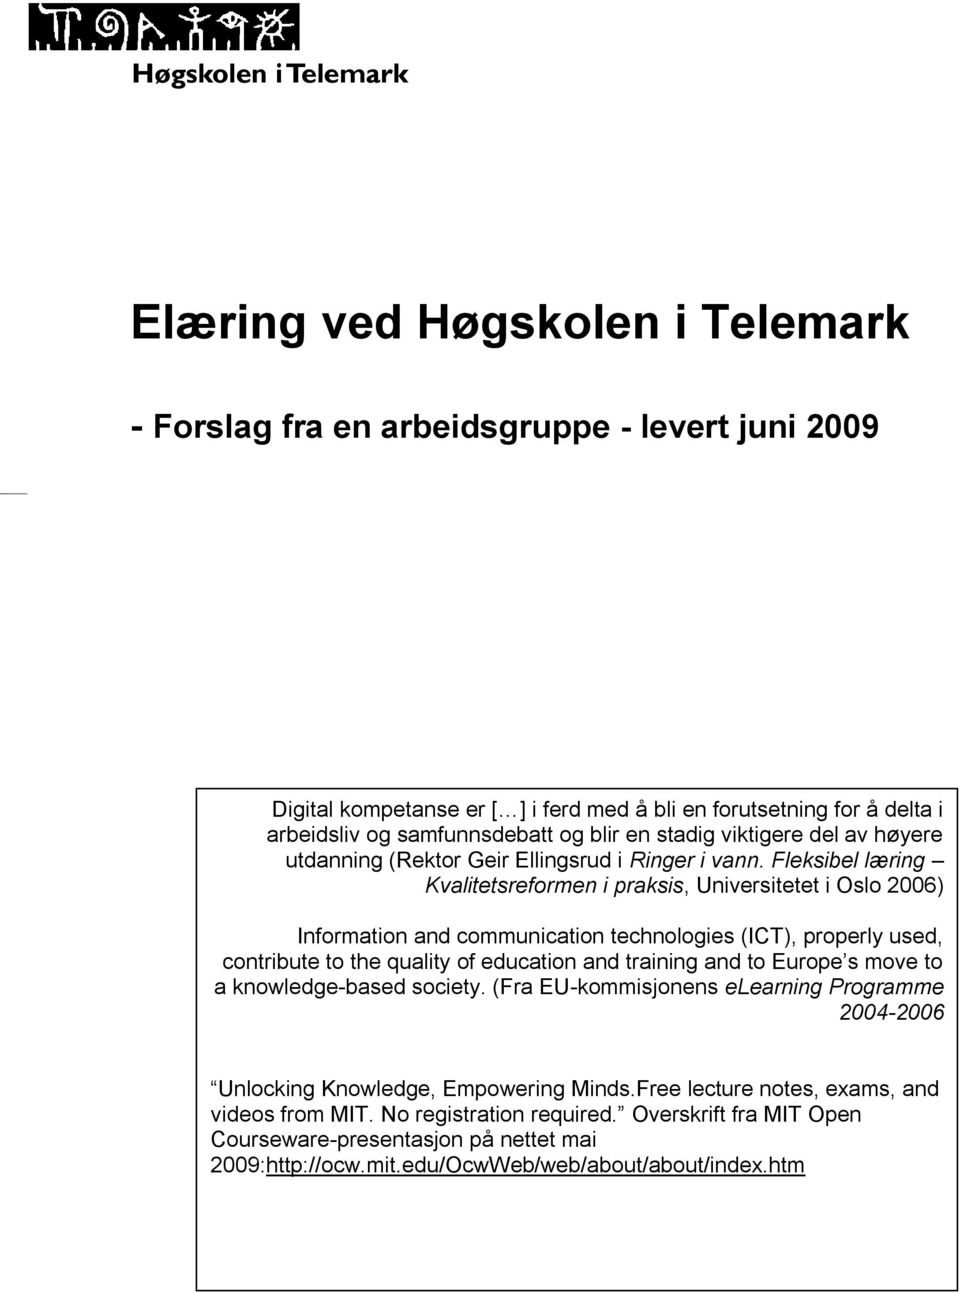 Fleksibel læring Kvalitetsreformen i praksis, Universitetet i Oslo 2006) Information and communication technologies (ICT), properly used, contribute to the quality of education and training and to